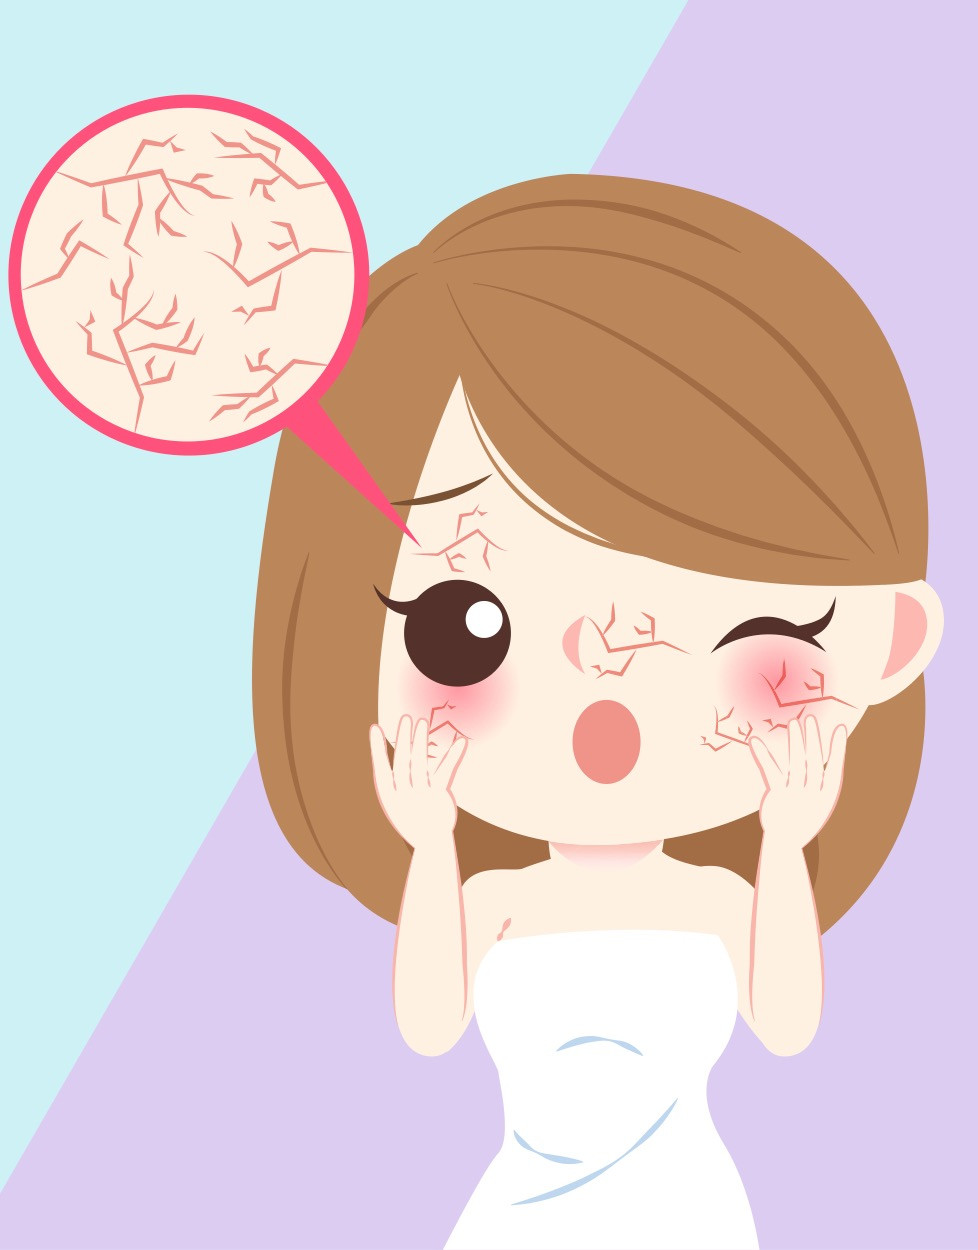 Dealing with Dry Skin